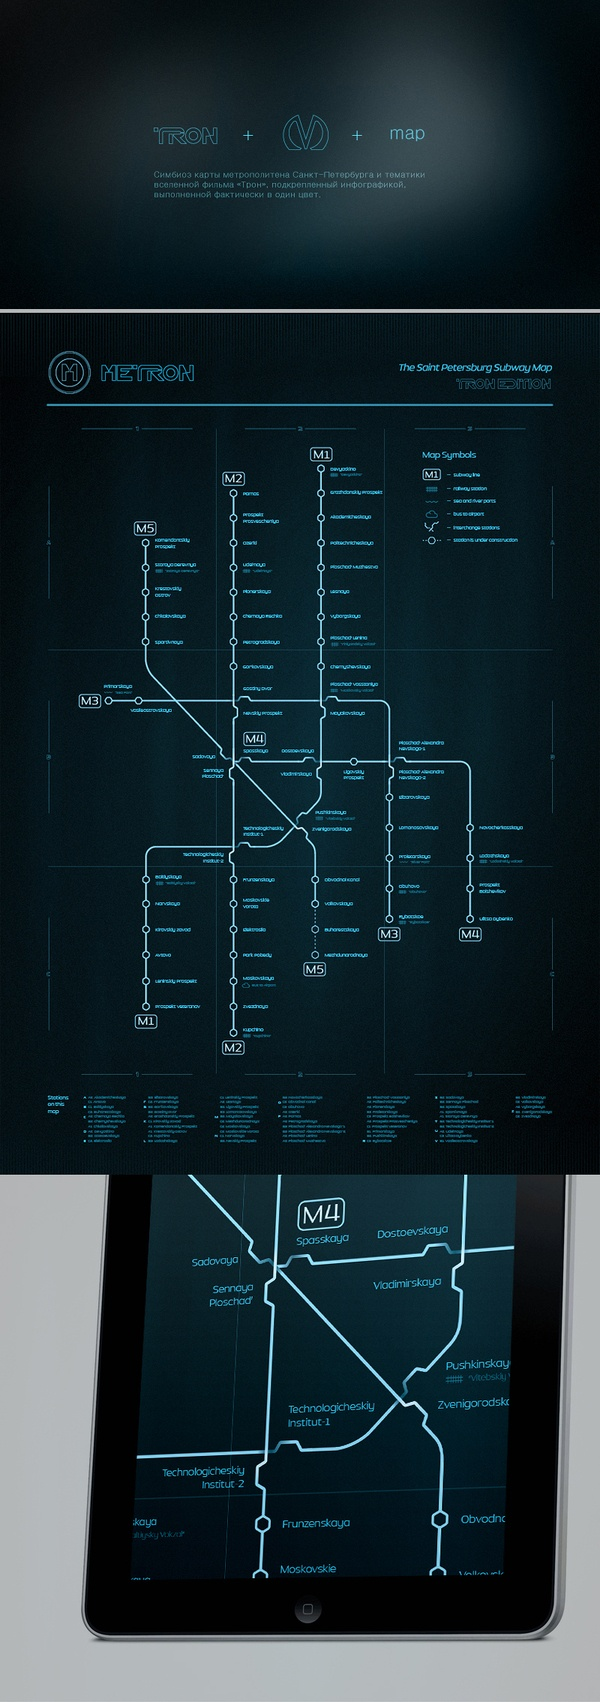 Tron Metro Map. simple graphics. easy to understand symbols. could be brighter.